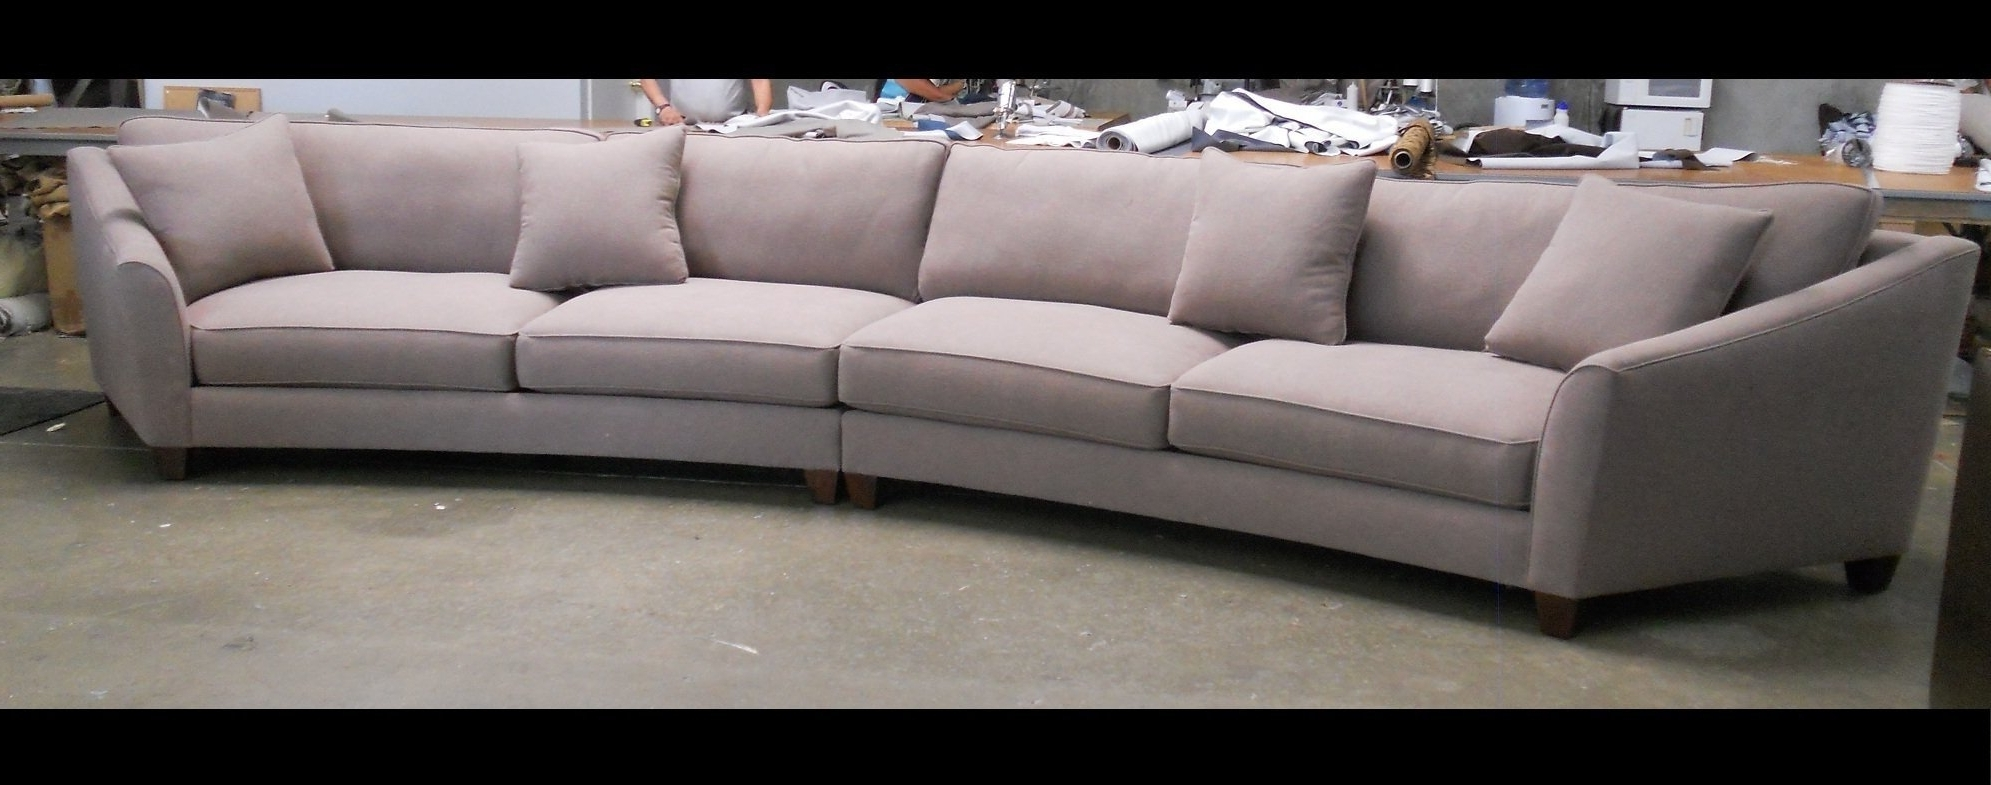 Furniture : 5060 Recliner Sectional Sofa Costco $699 Corner Couch Within Fashionable 80X80 Sectional Sofas (View 10 of 20)